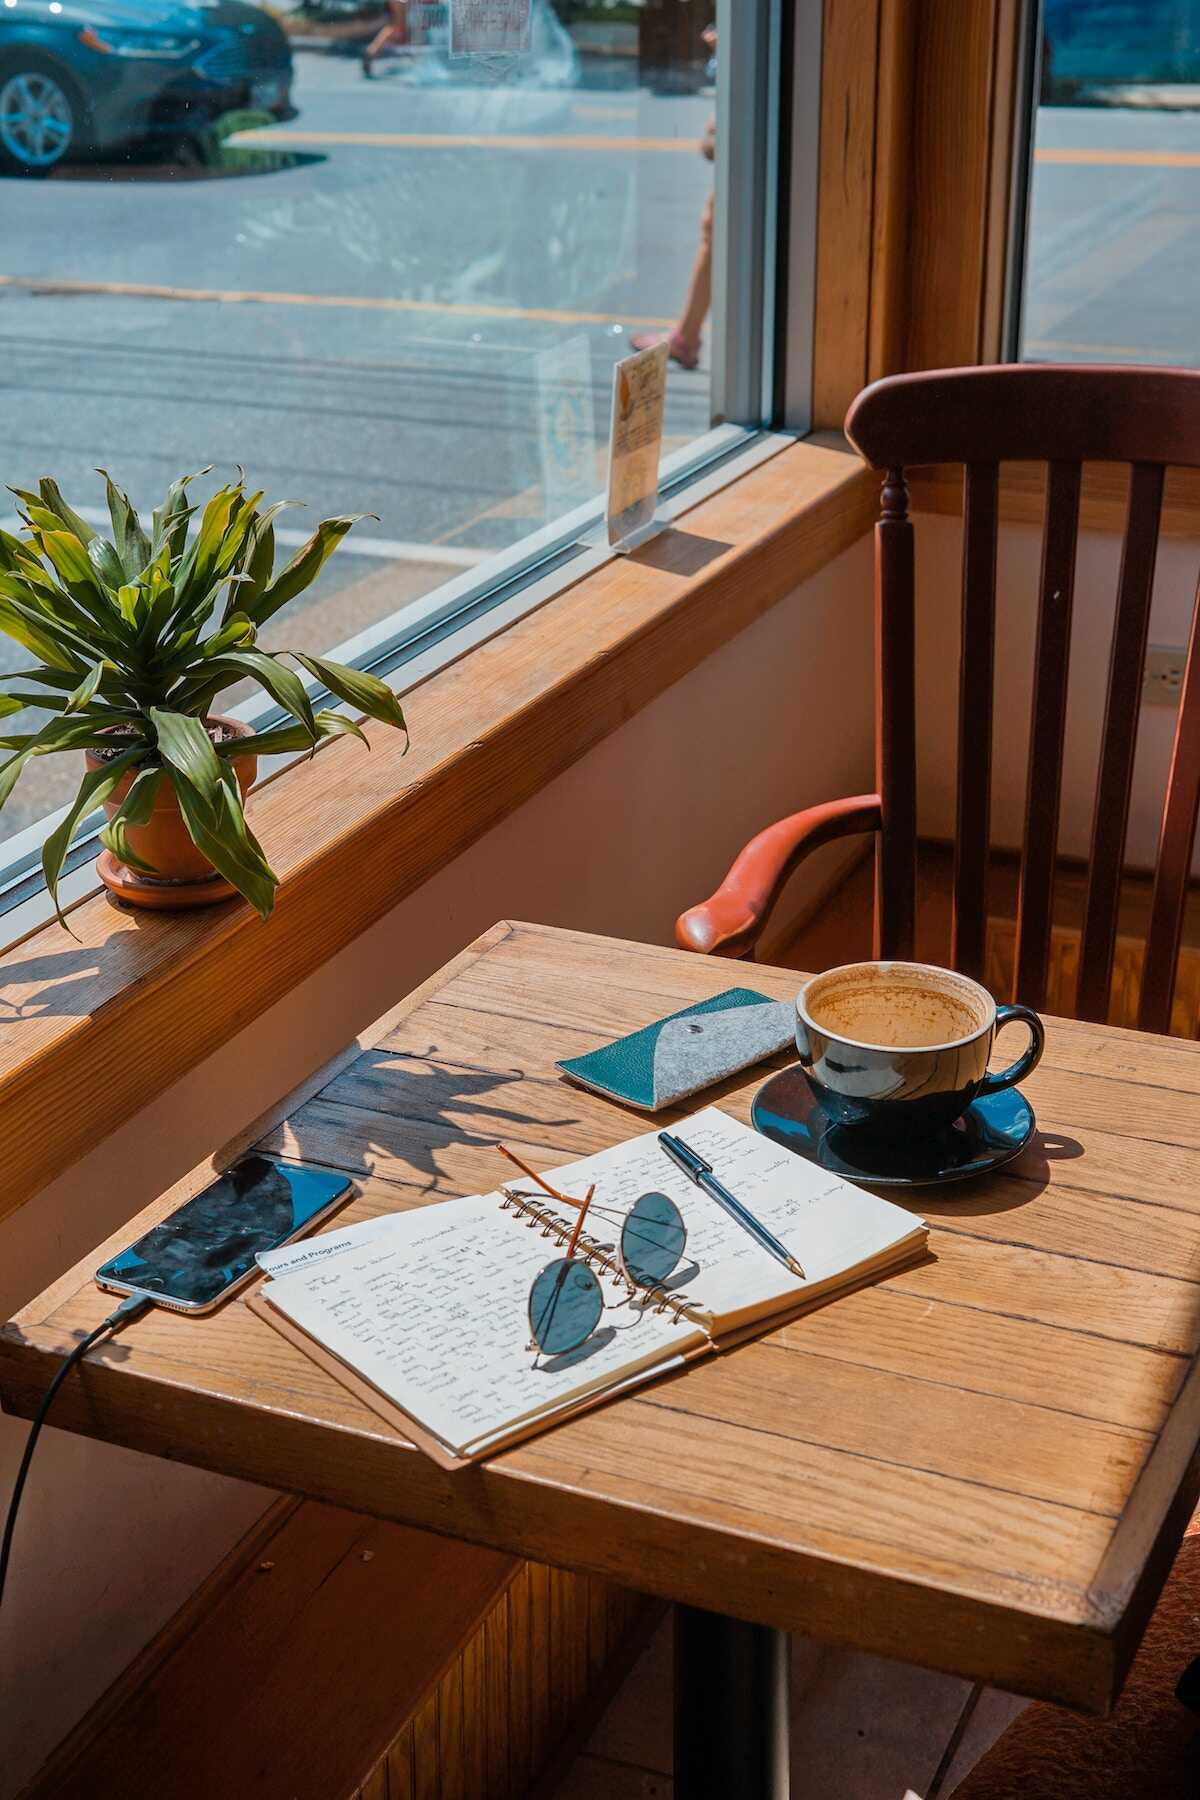 Sunny cafe table featuring an open notebook, pen, sunglasses, phone and empty coffee cup